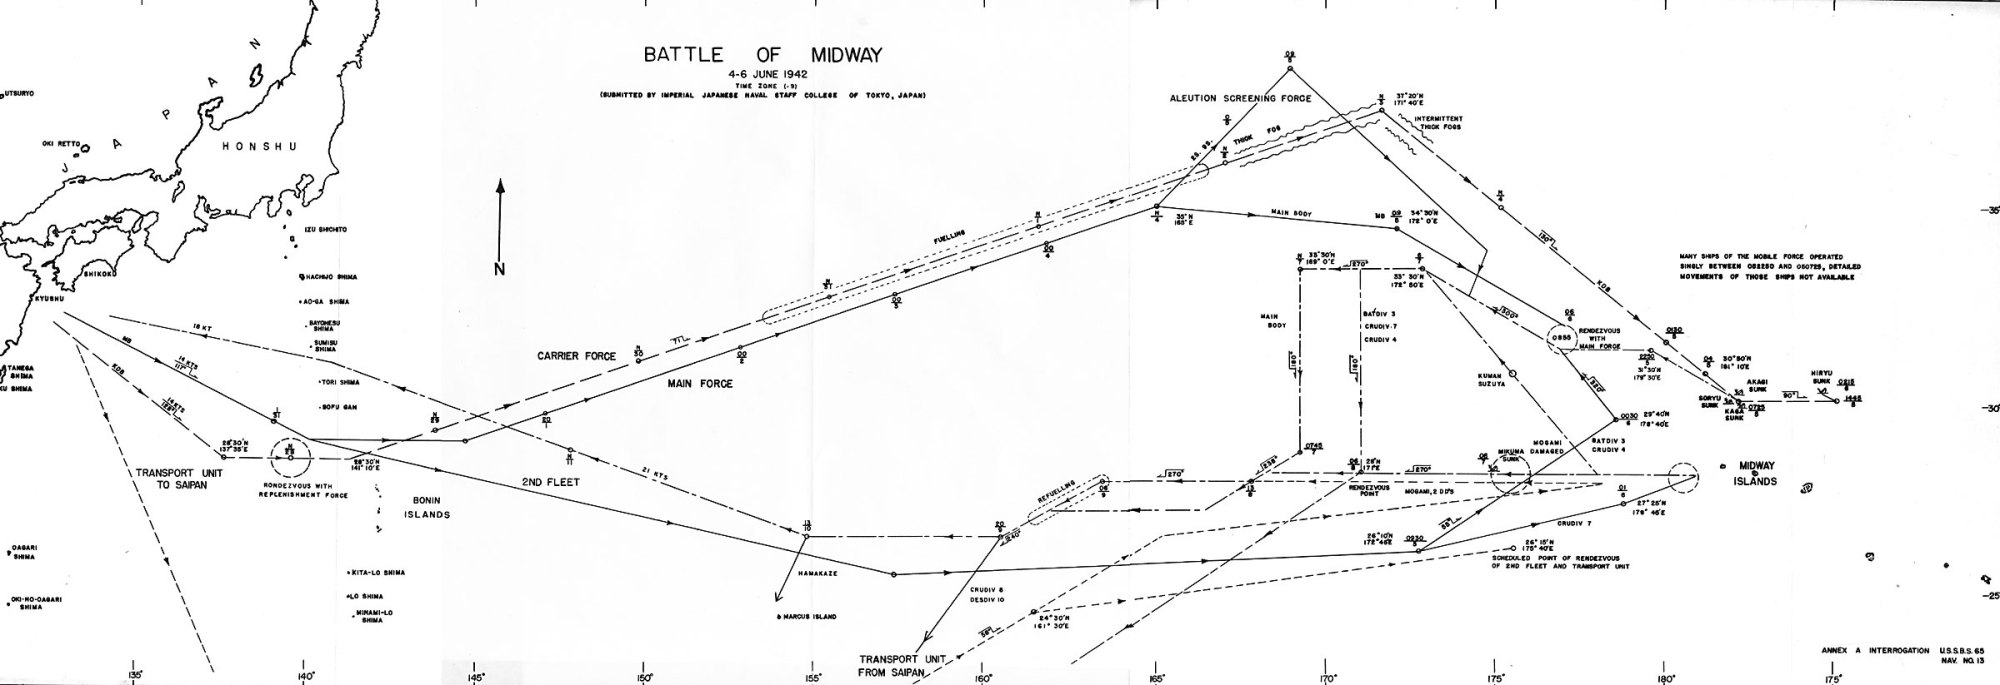 hight resolution of 13 1 track chart battle of midway 4 6 june 1942 facing p